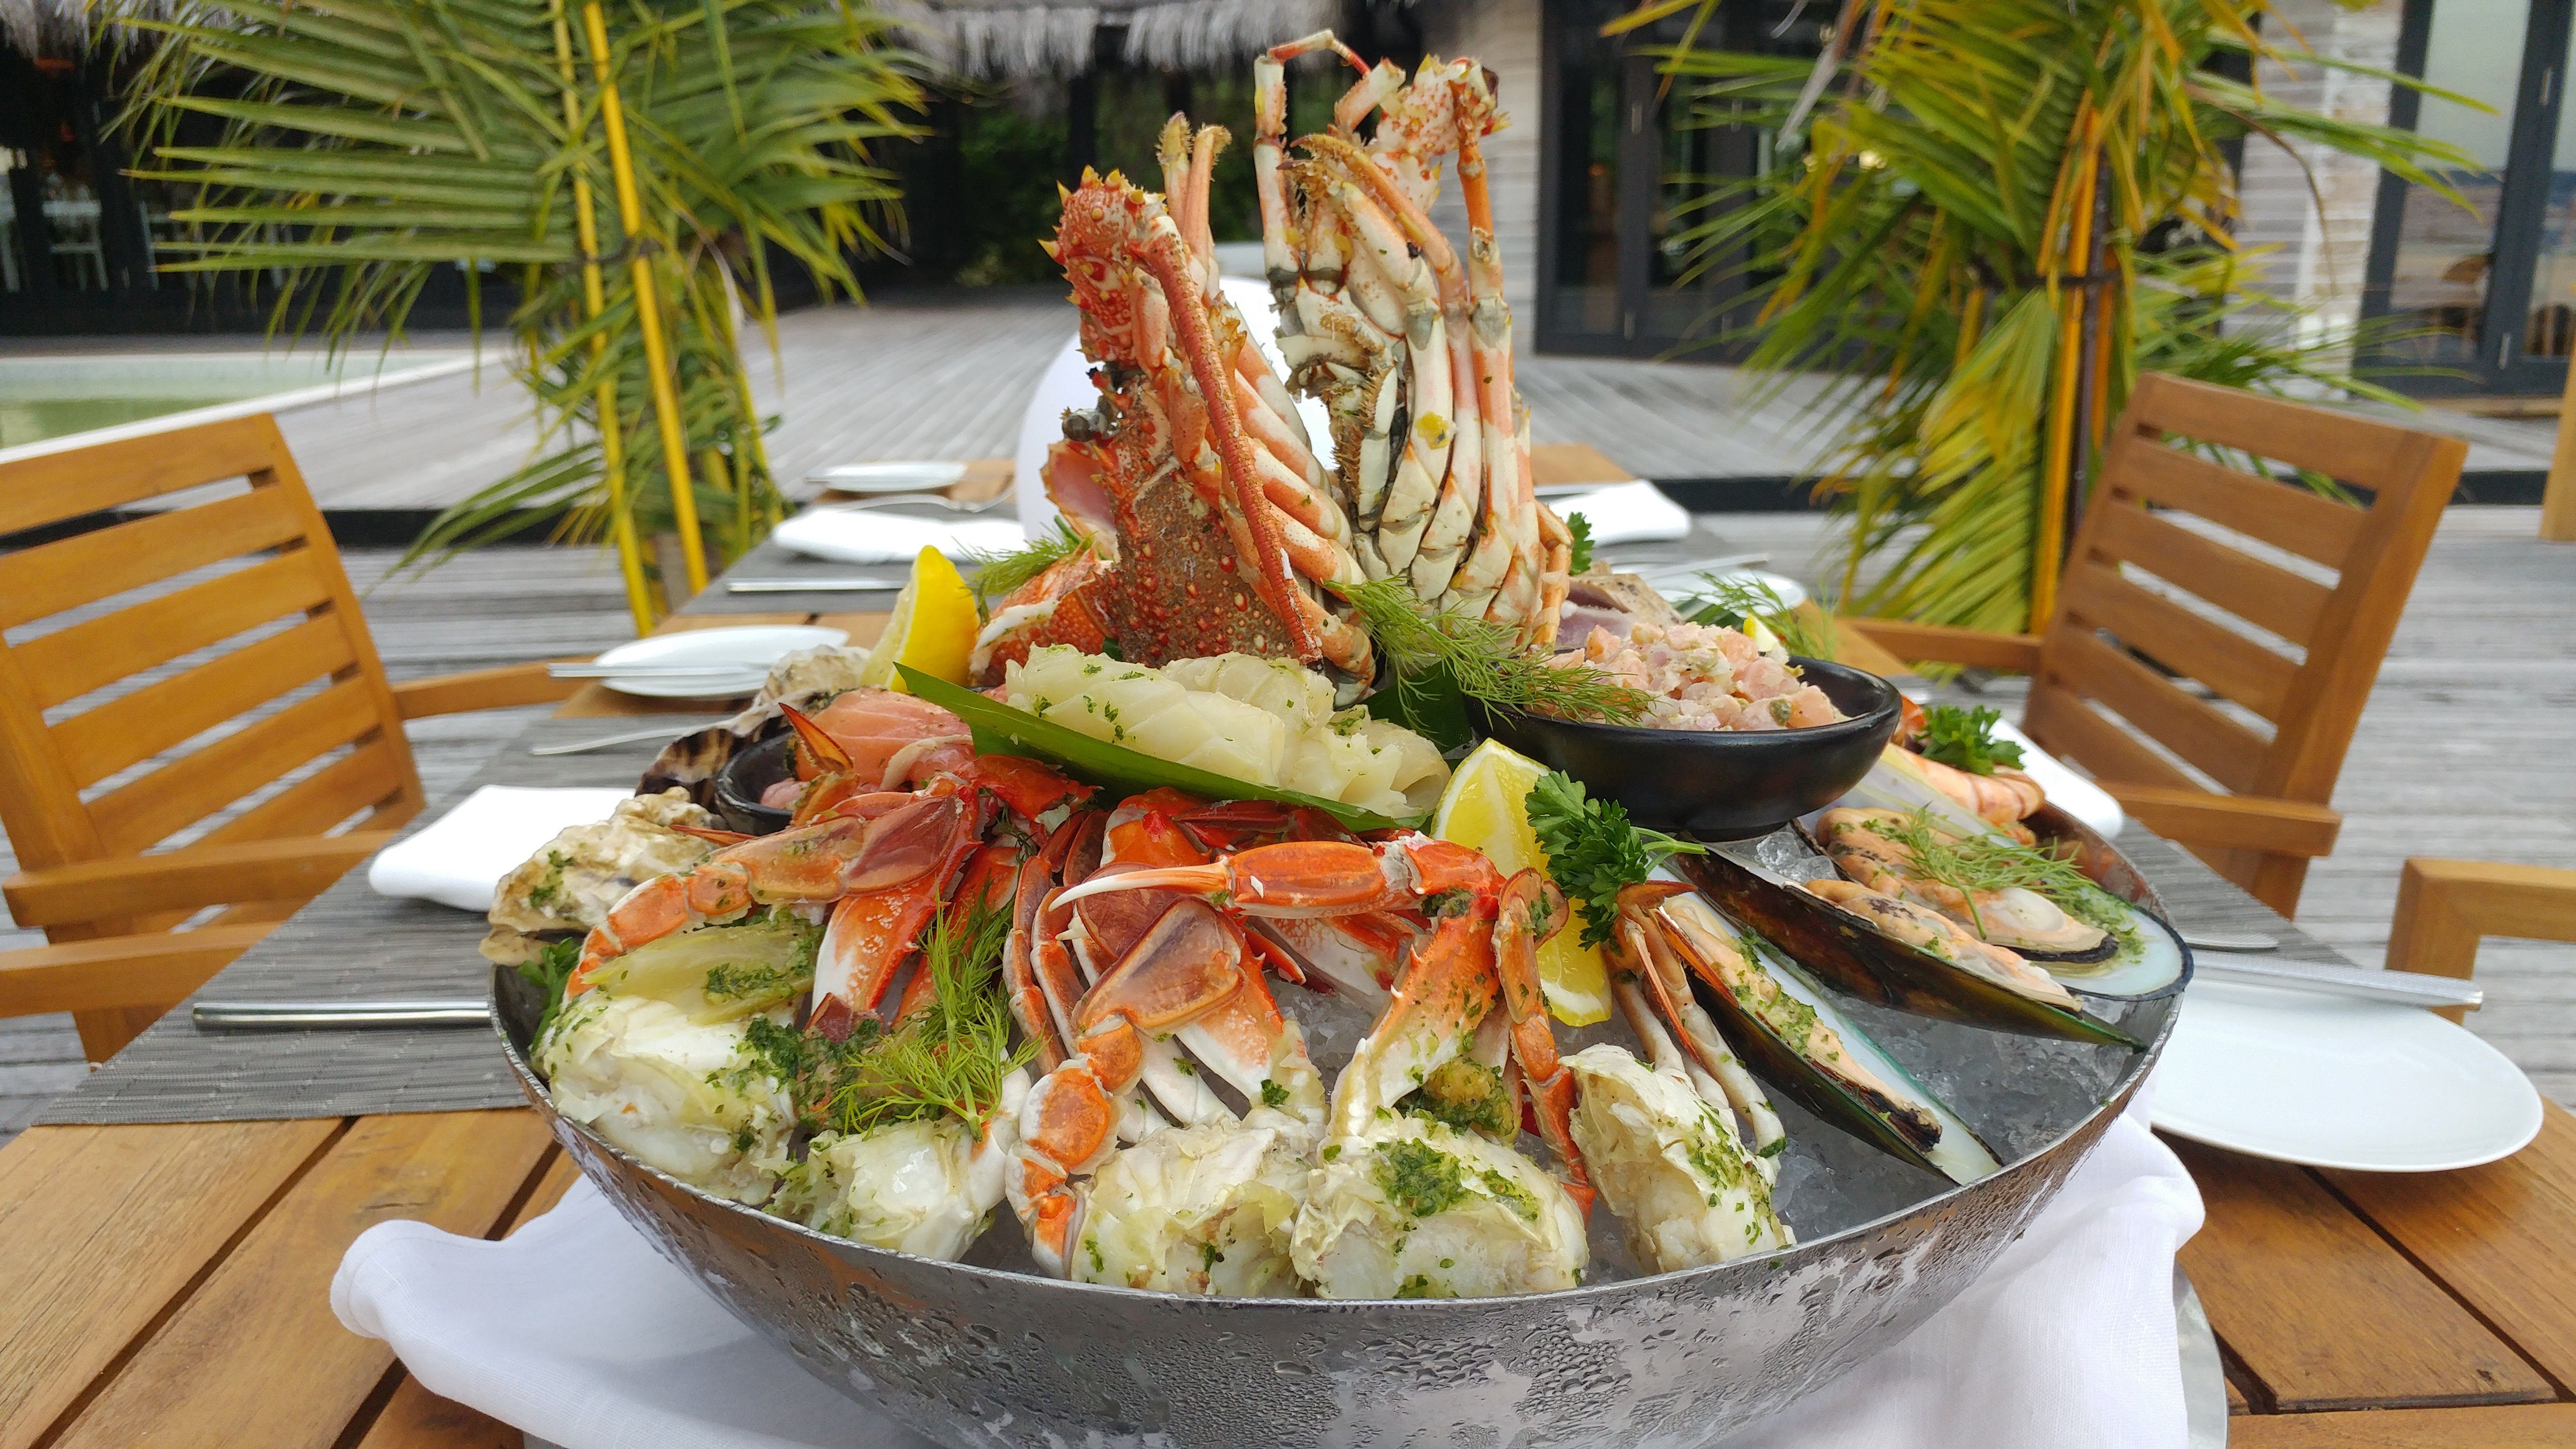 Chef eyck zimmer to prepare special dining experience at outrigger